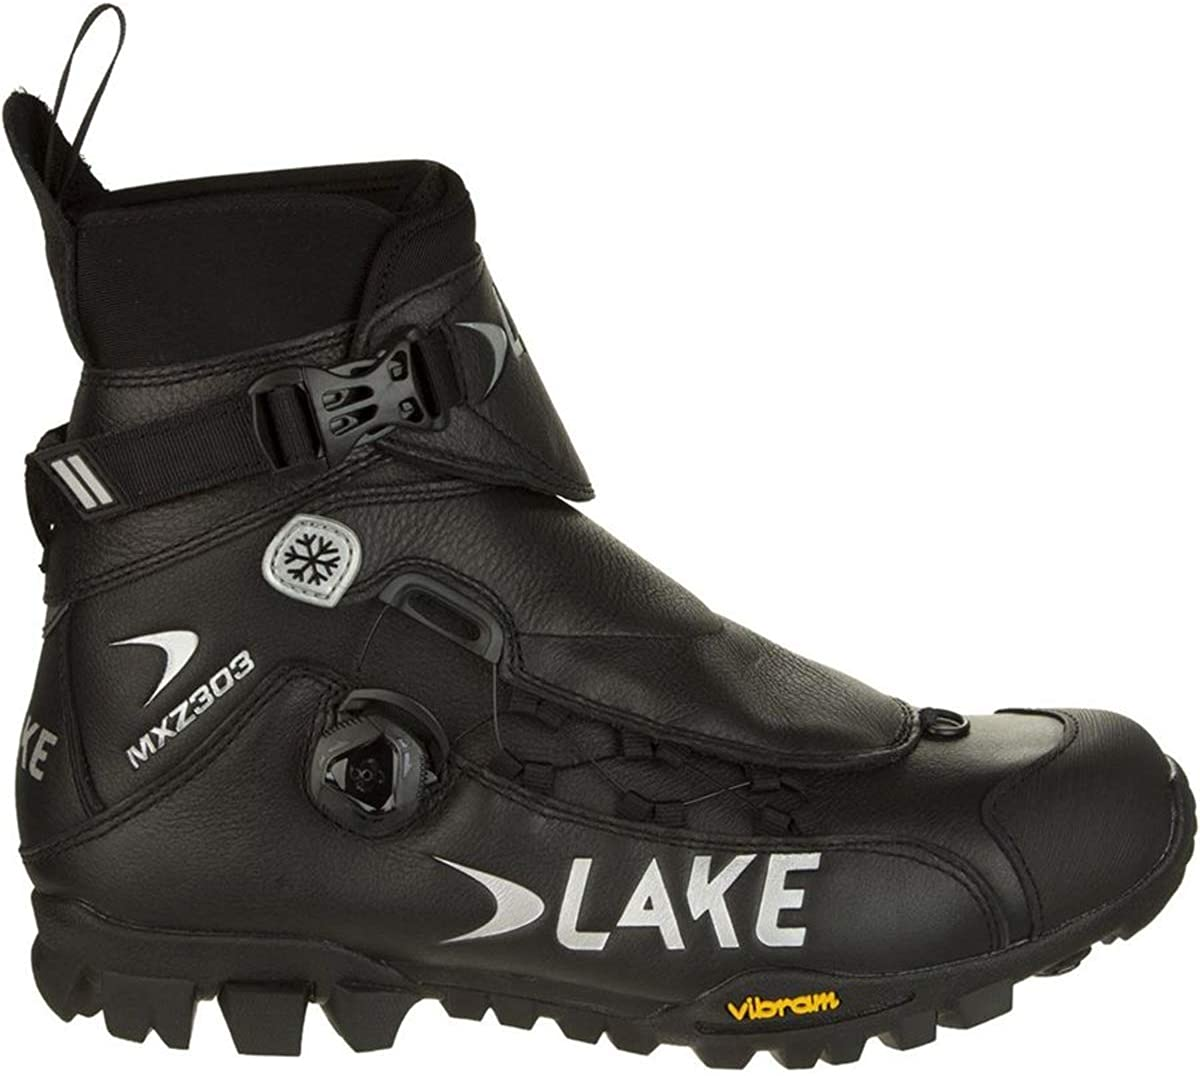 Lake Cycling MXZ303 Men's Winter Boot - Vibram Outsole - Thermosol Composite Insulated